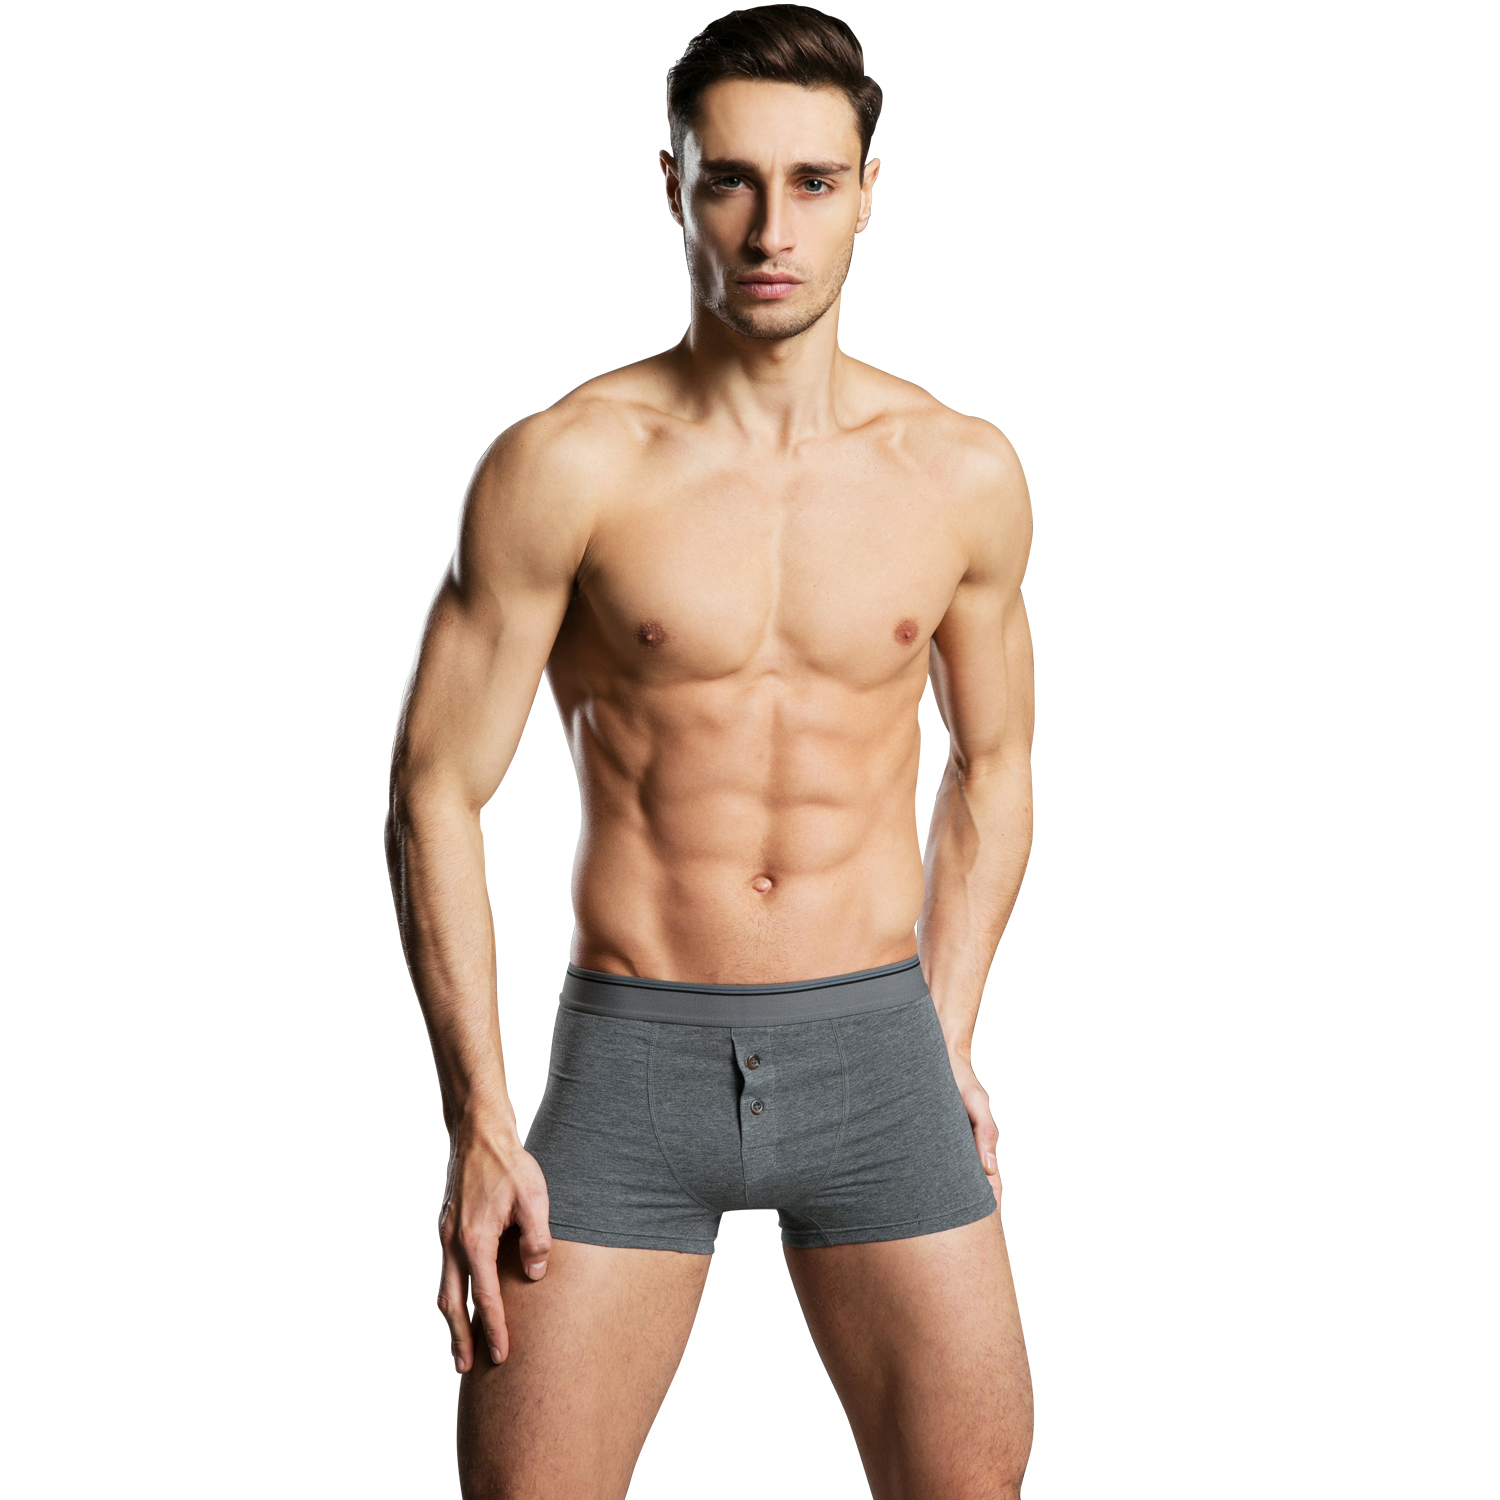 boxer comfortable zoom pack to j comforter catalog outdoor brief omf hover jockey com product sport boxers